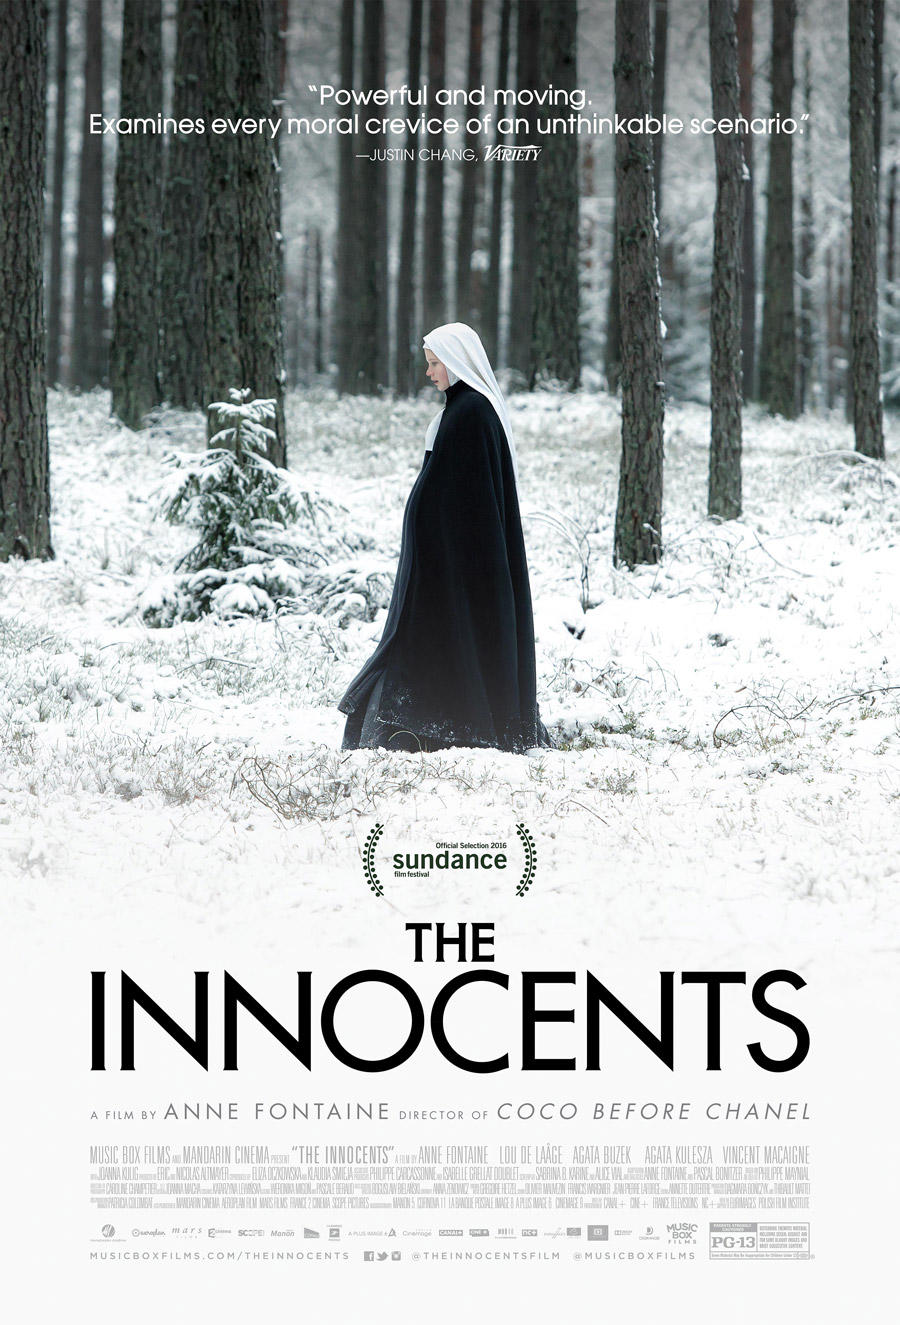 The Innocents poster art